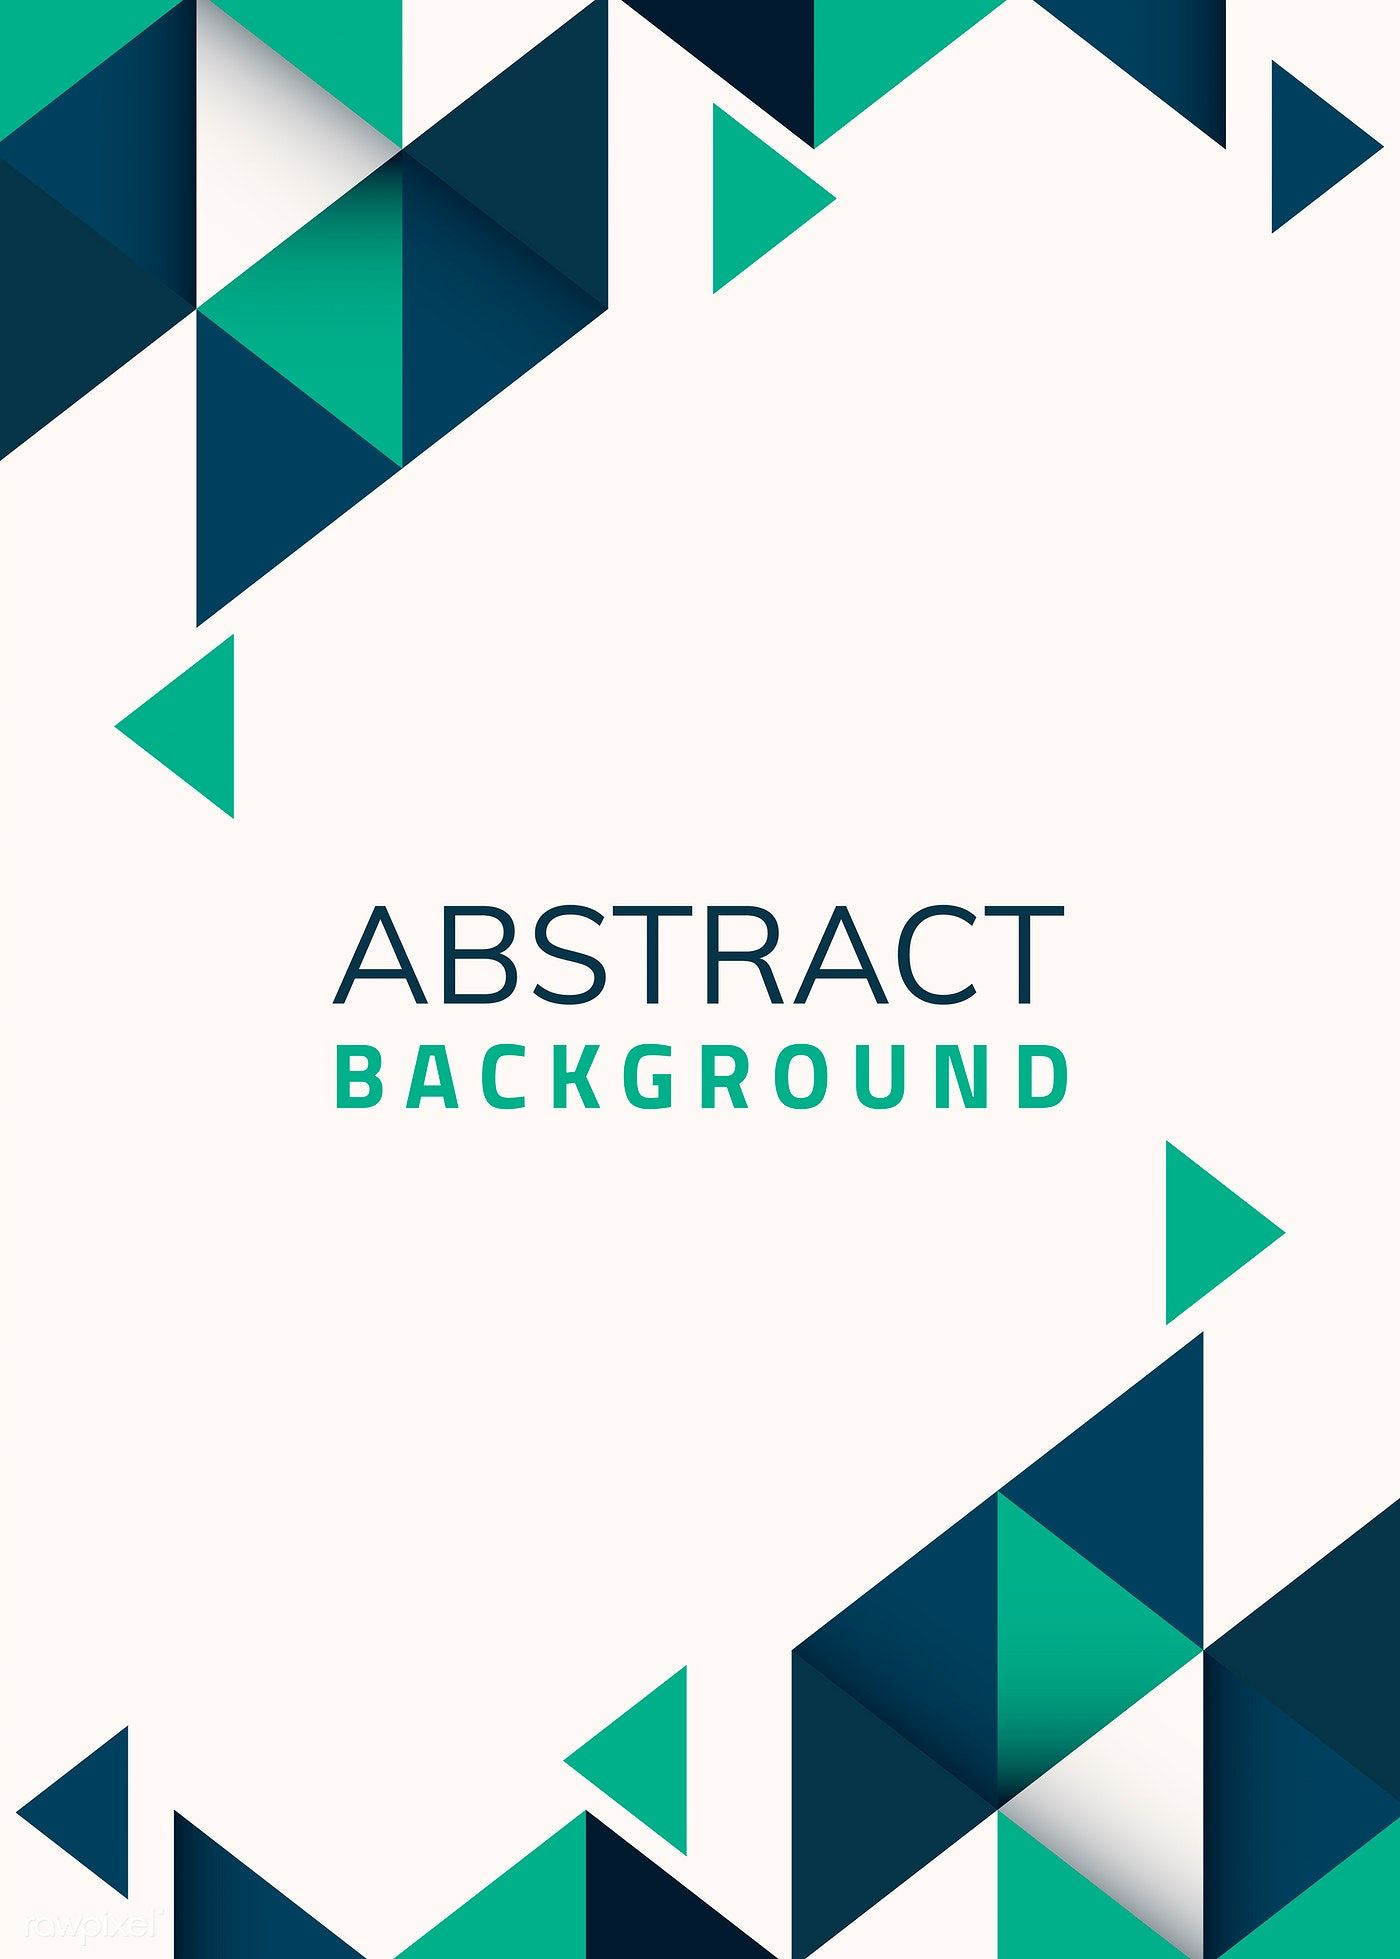 Download Premium Vector Of Abstract Blue And Green Geometric Background Geometric Background Background Design Vector Vector Free